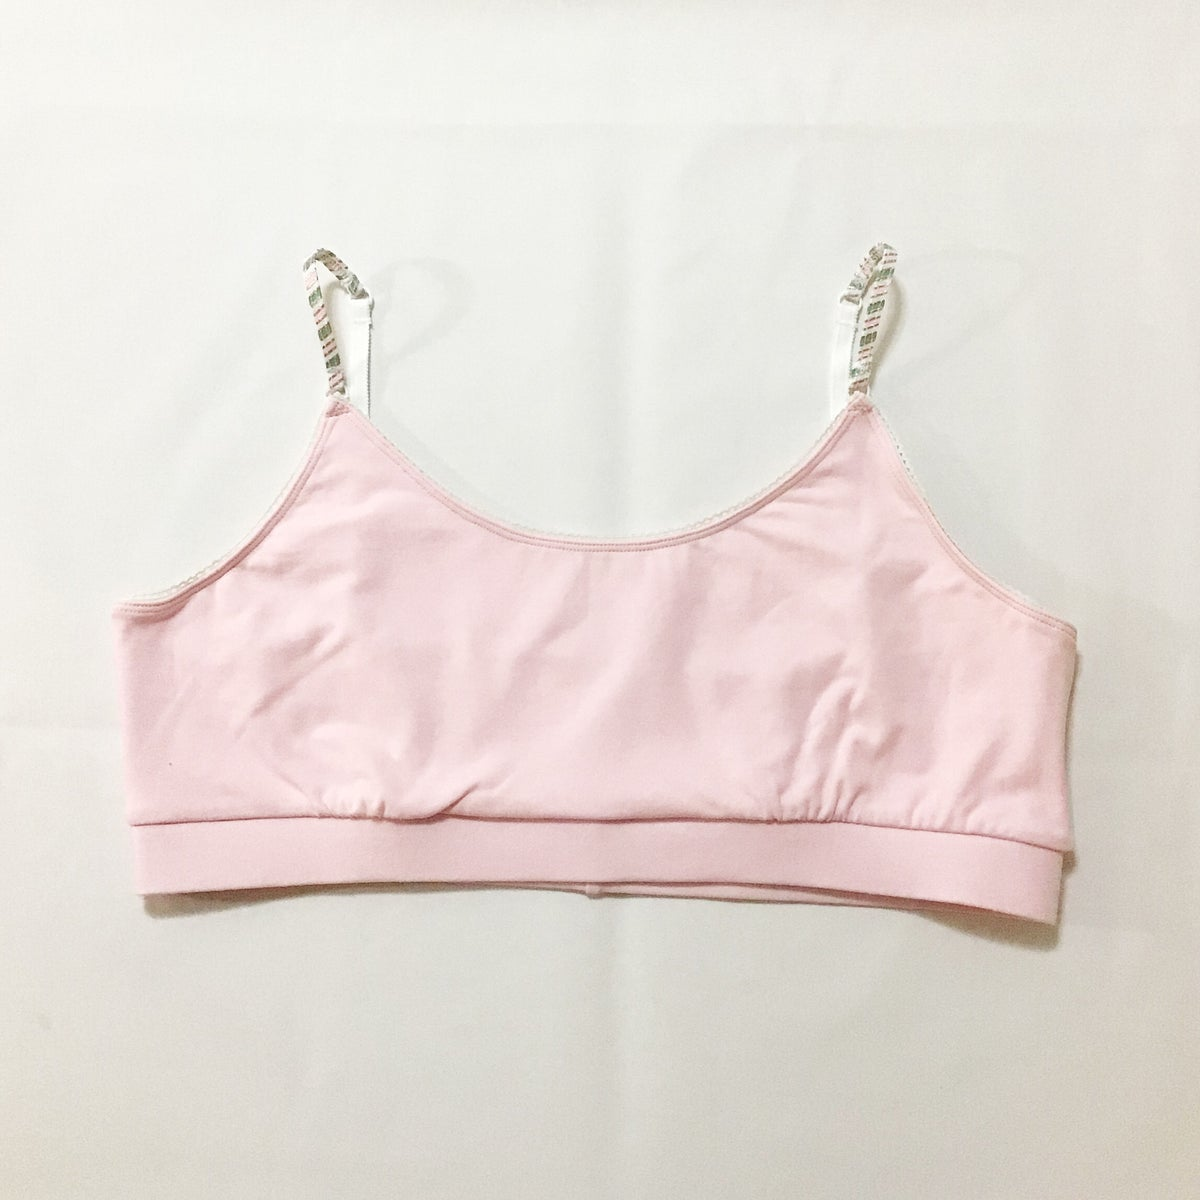 Image of Light Pink Not So Sports Bra